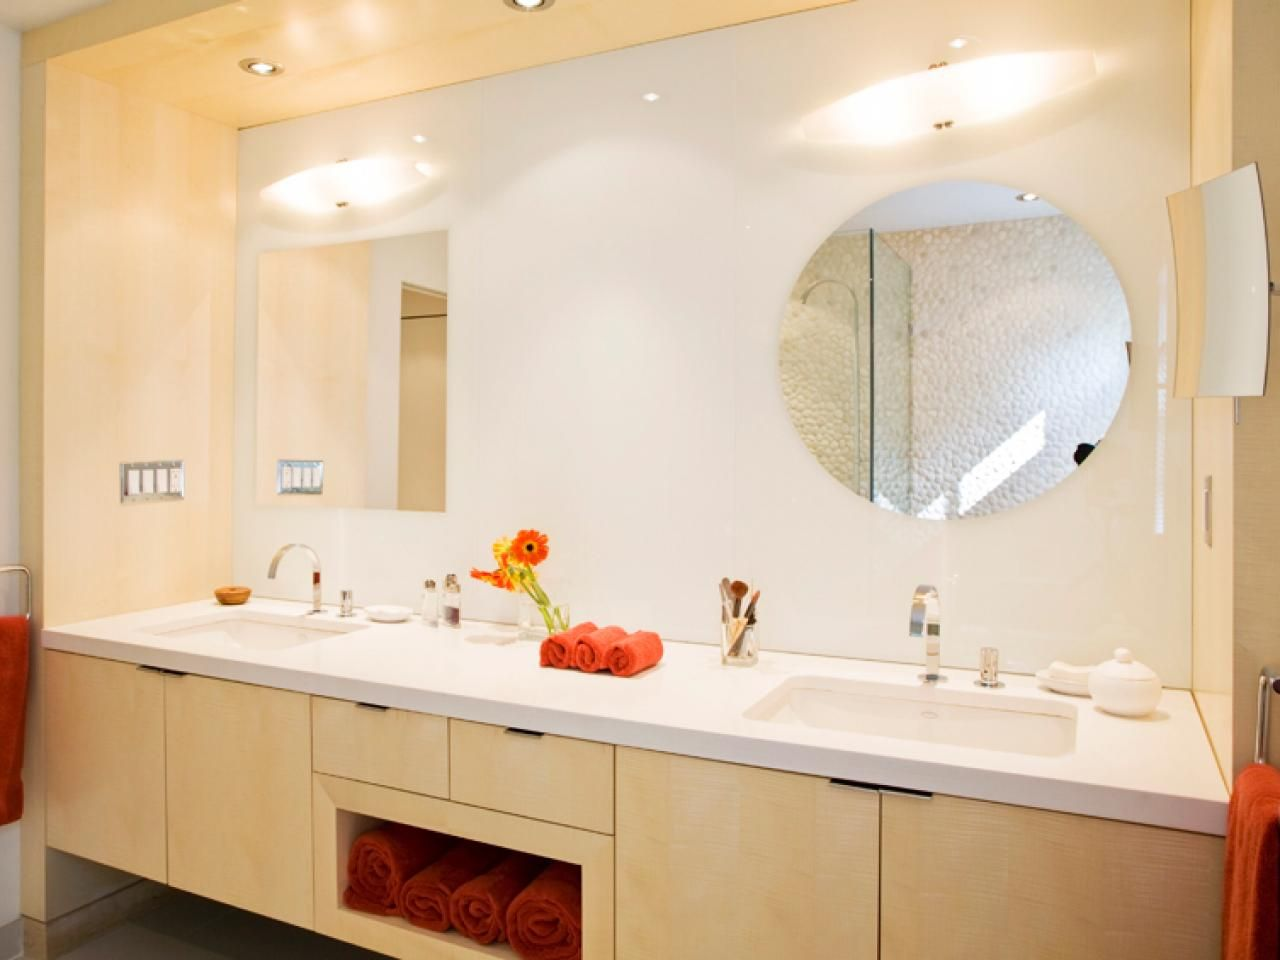 Geometric mirrors adorn this contemporary double vanity bathroom. Coral-colored accents add a pop of color to an otherwise neutral space.